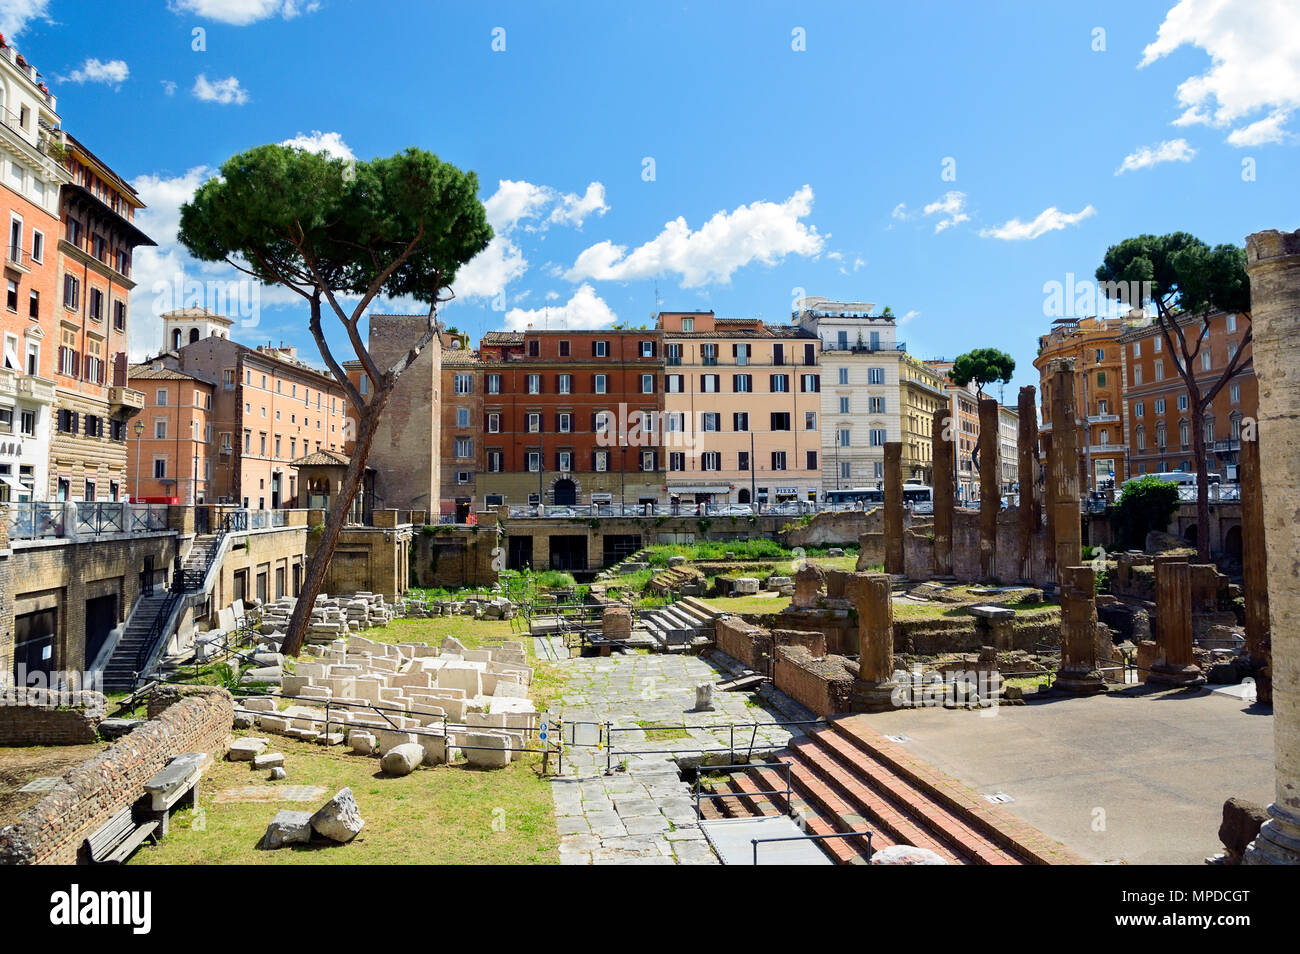 Largo di Torre Argentina. Square with ancient ruins of four Roman Republican temples and Pompey's Theatre in Rome, Italy - Stock Image